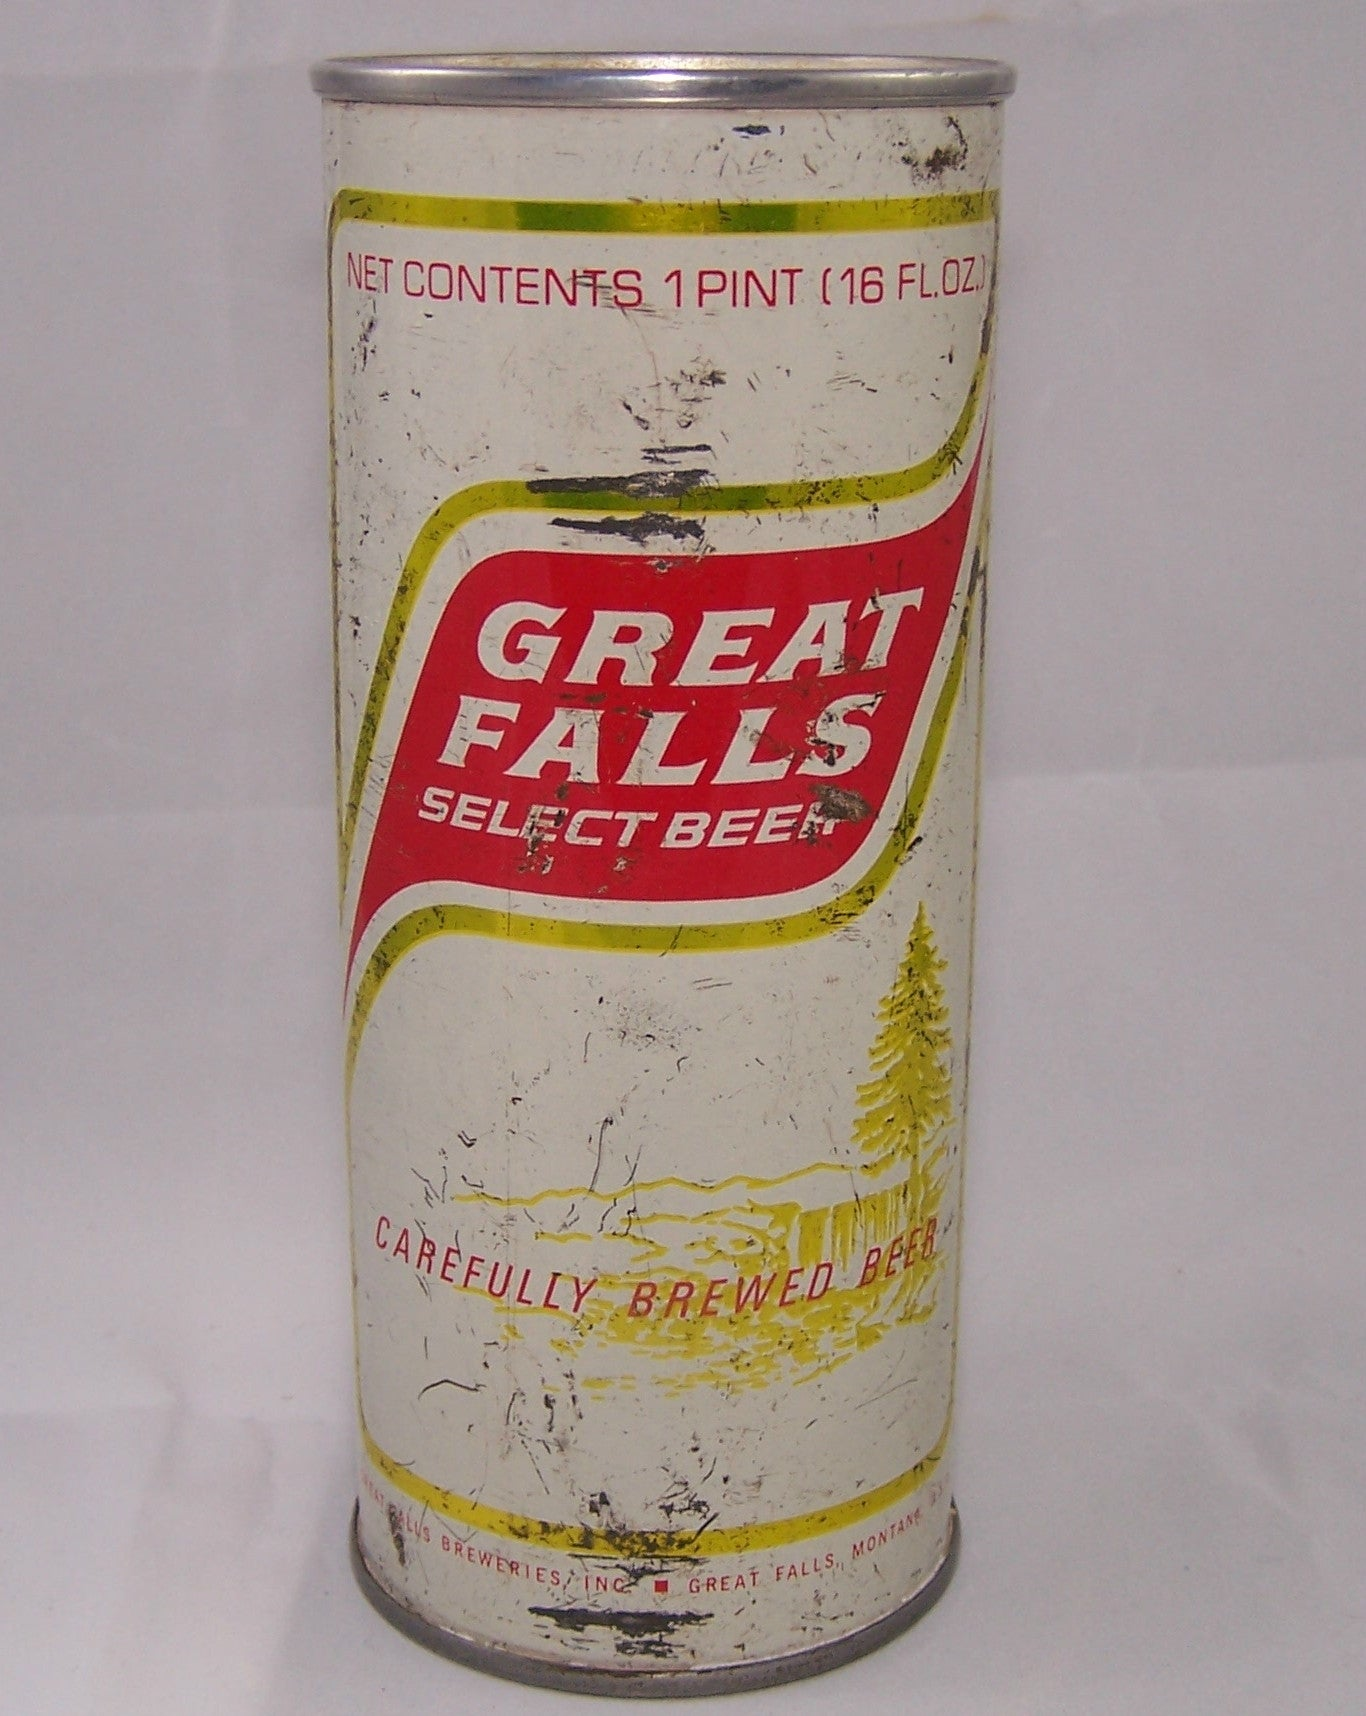 Great Falls Select Beer, USBC II 151-30, Grade 3 Sold 9/2/15